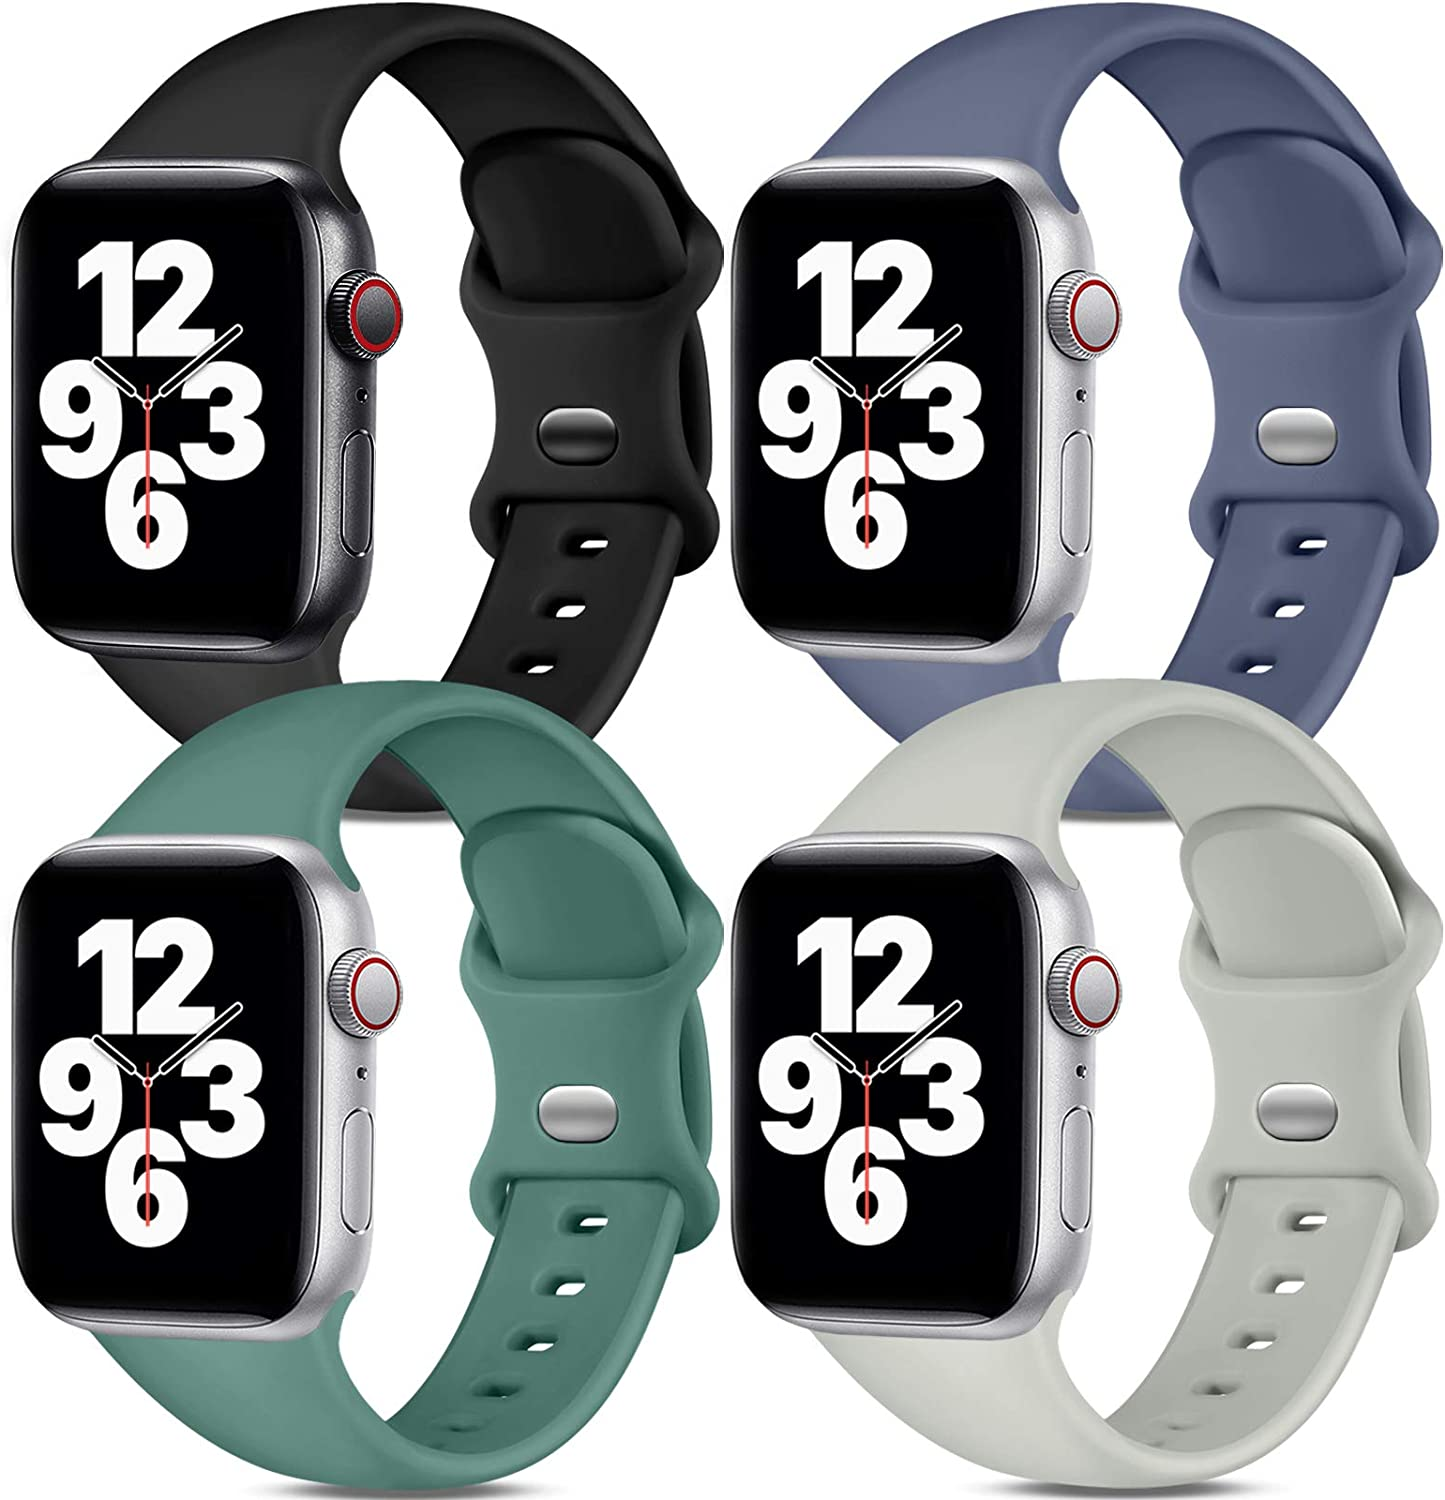 Dirrelo Band Compatible with Apple Watch Bands 38mm 40mm, [4-Pack] Soft Silicone Strap Wristbands for iWatch Series 3 5 6 4 2 1 SE Women Men, Small Black, Blue, Pine Green, Gray